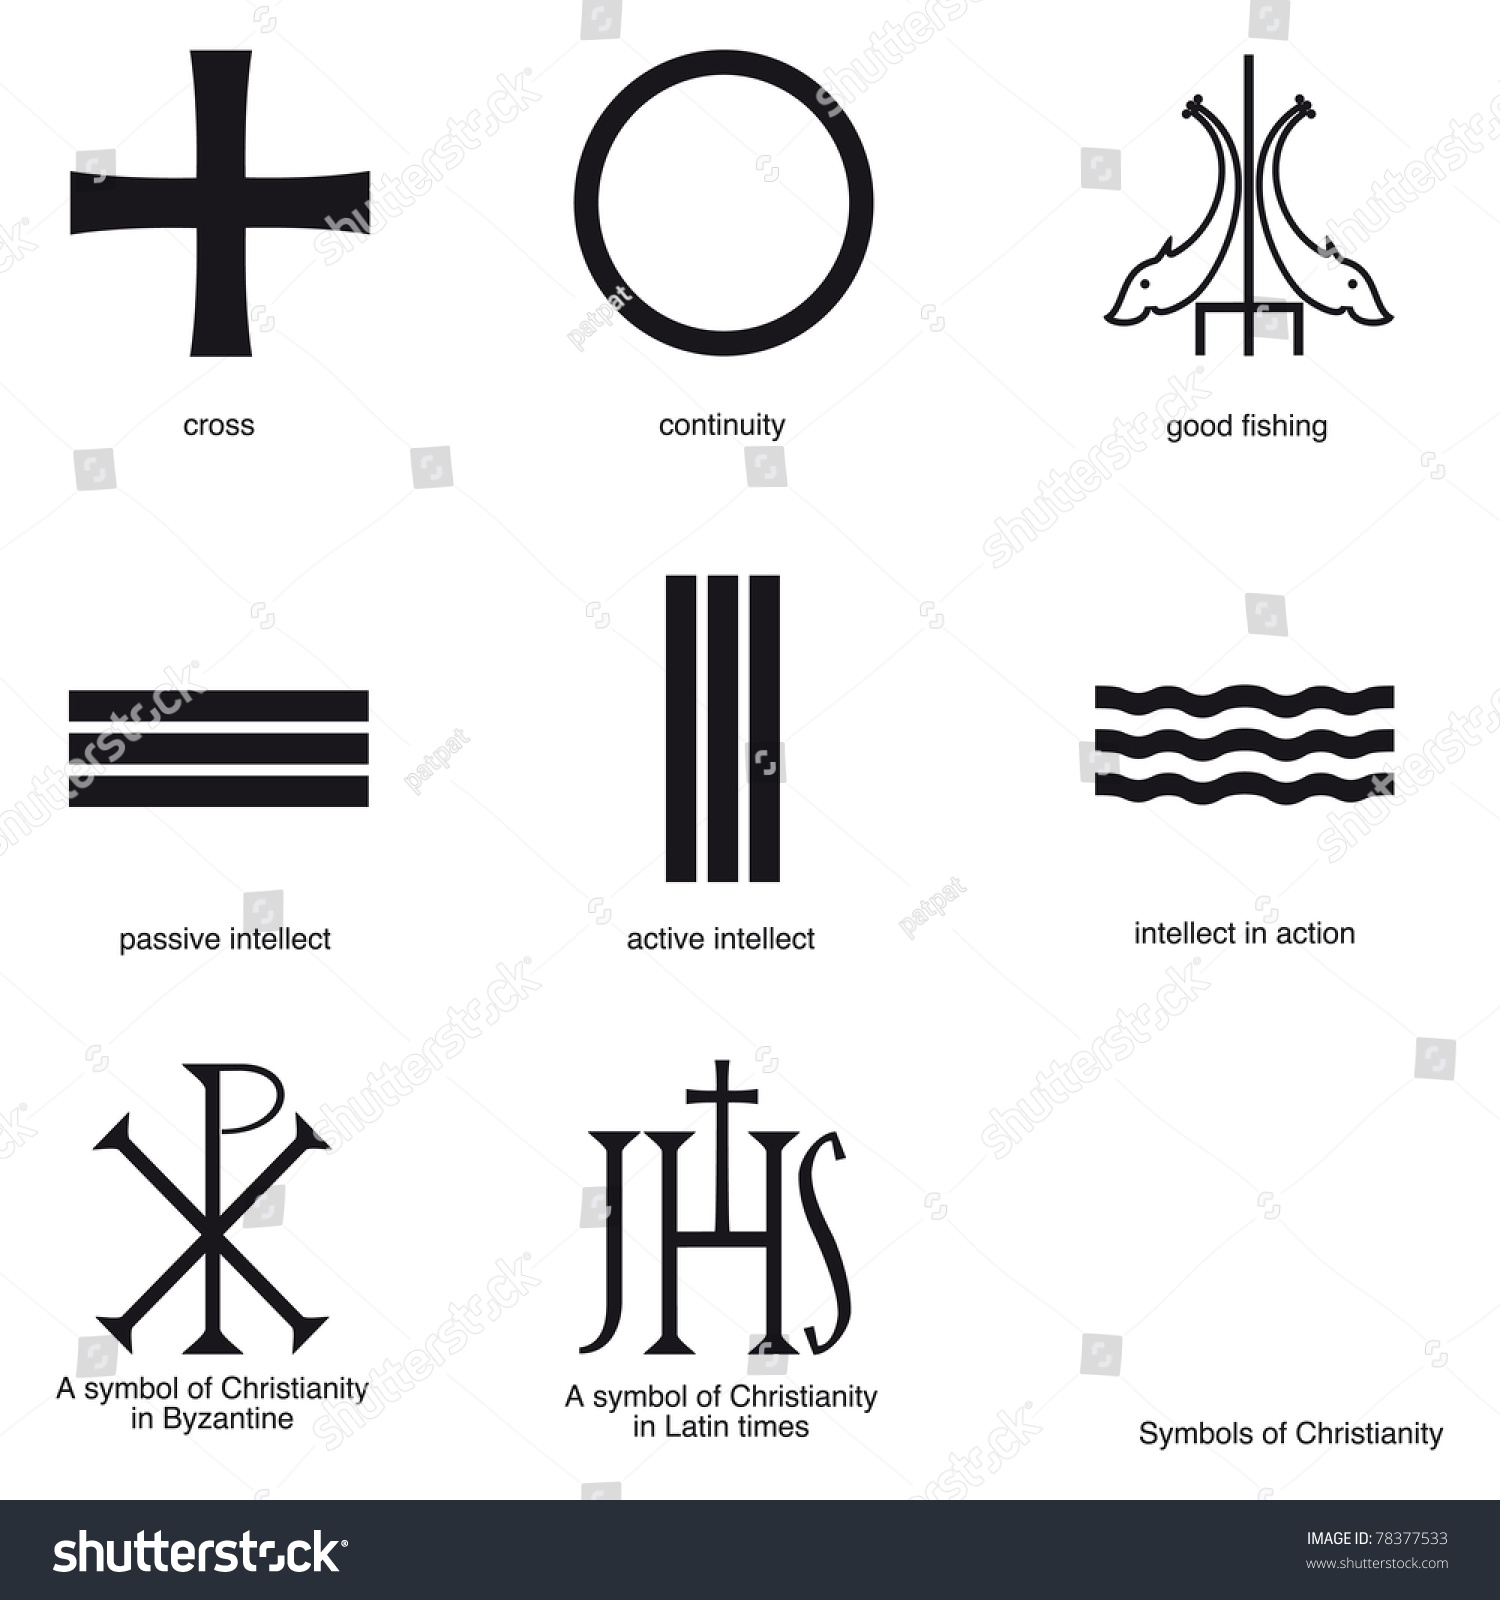 Christian Symbols And Their Meanings For Kids Crazywidowfo